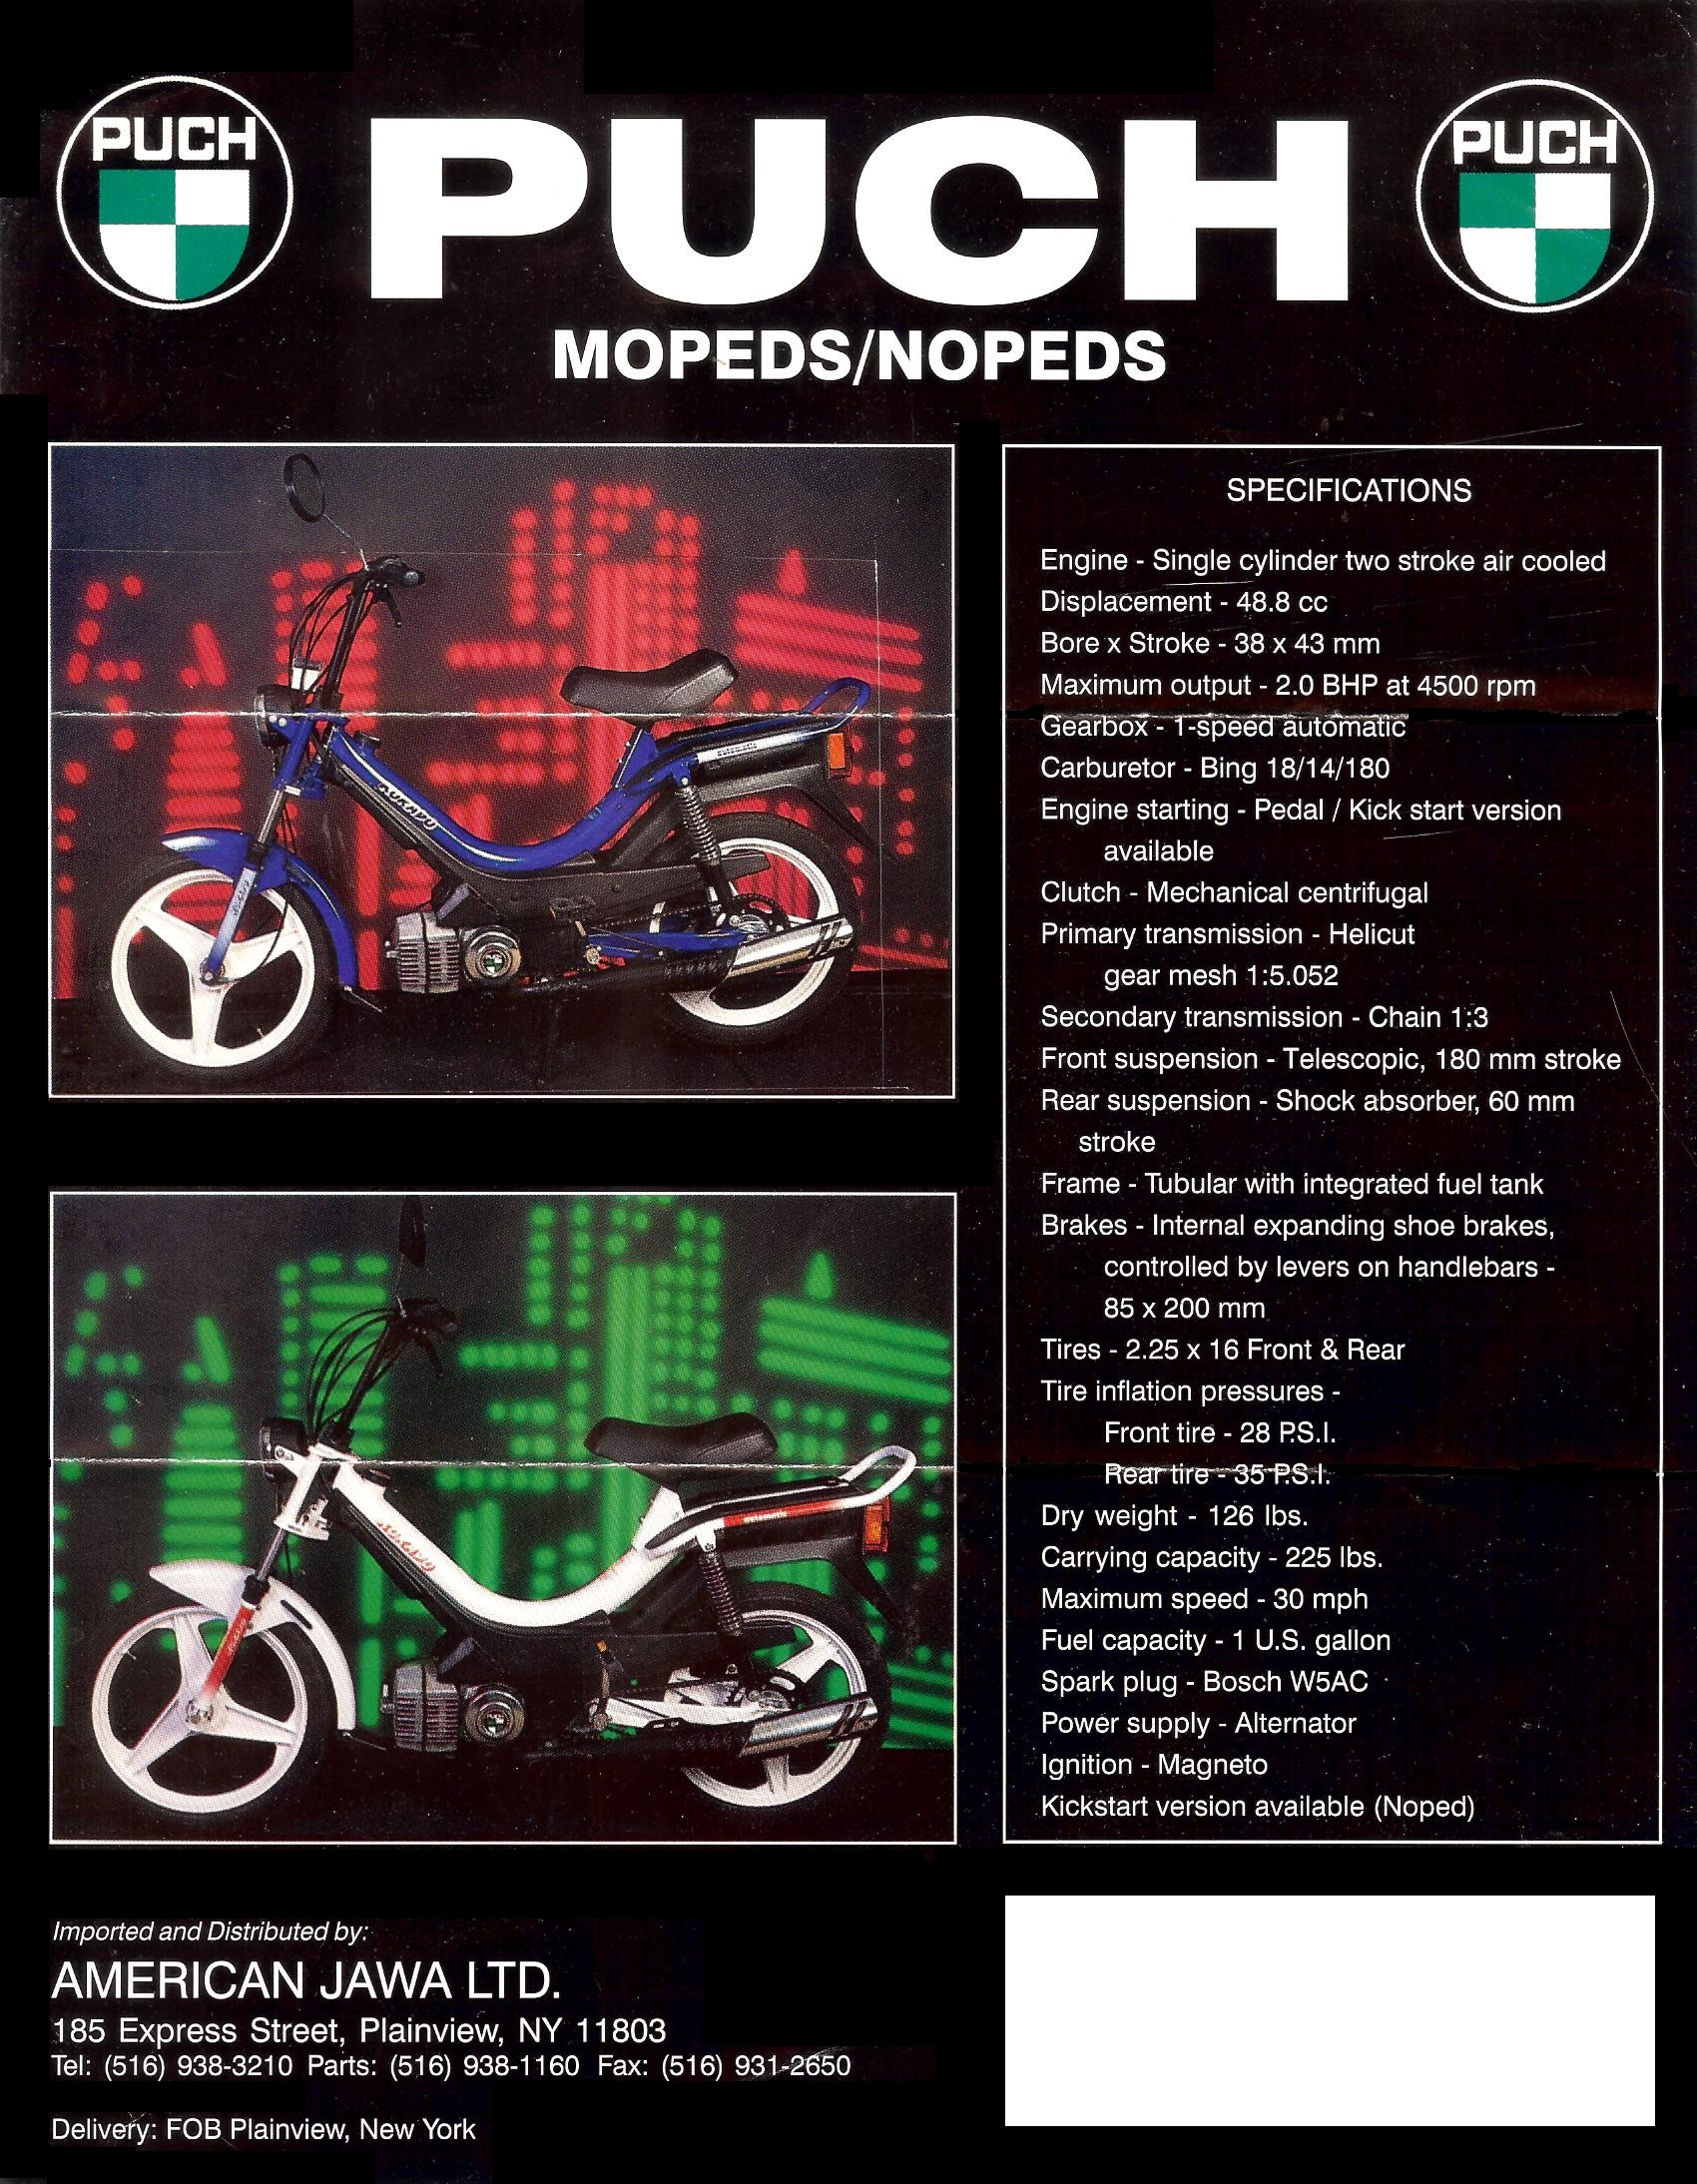 1995 puch korado moped electrical equipment wiring diagram binatanimanet myrons mopeds rh myronsmopeds com